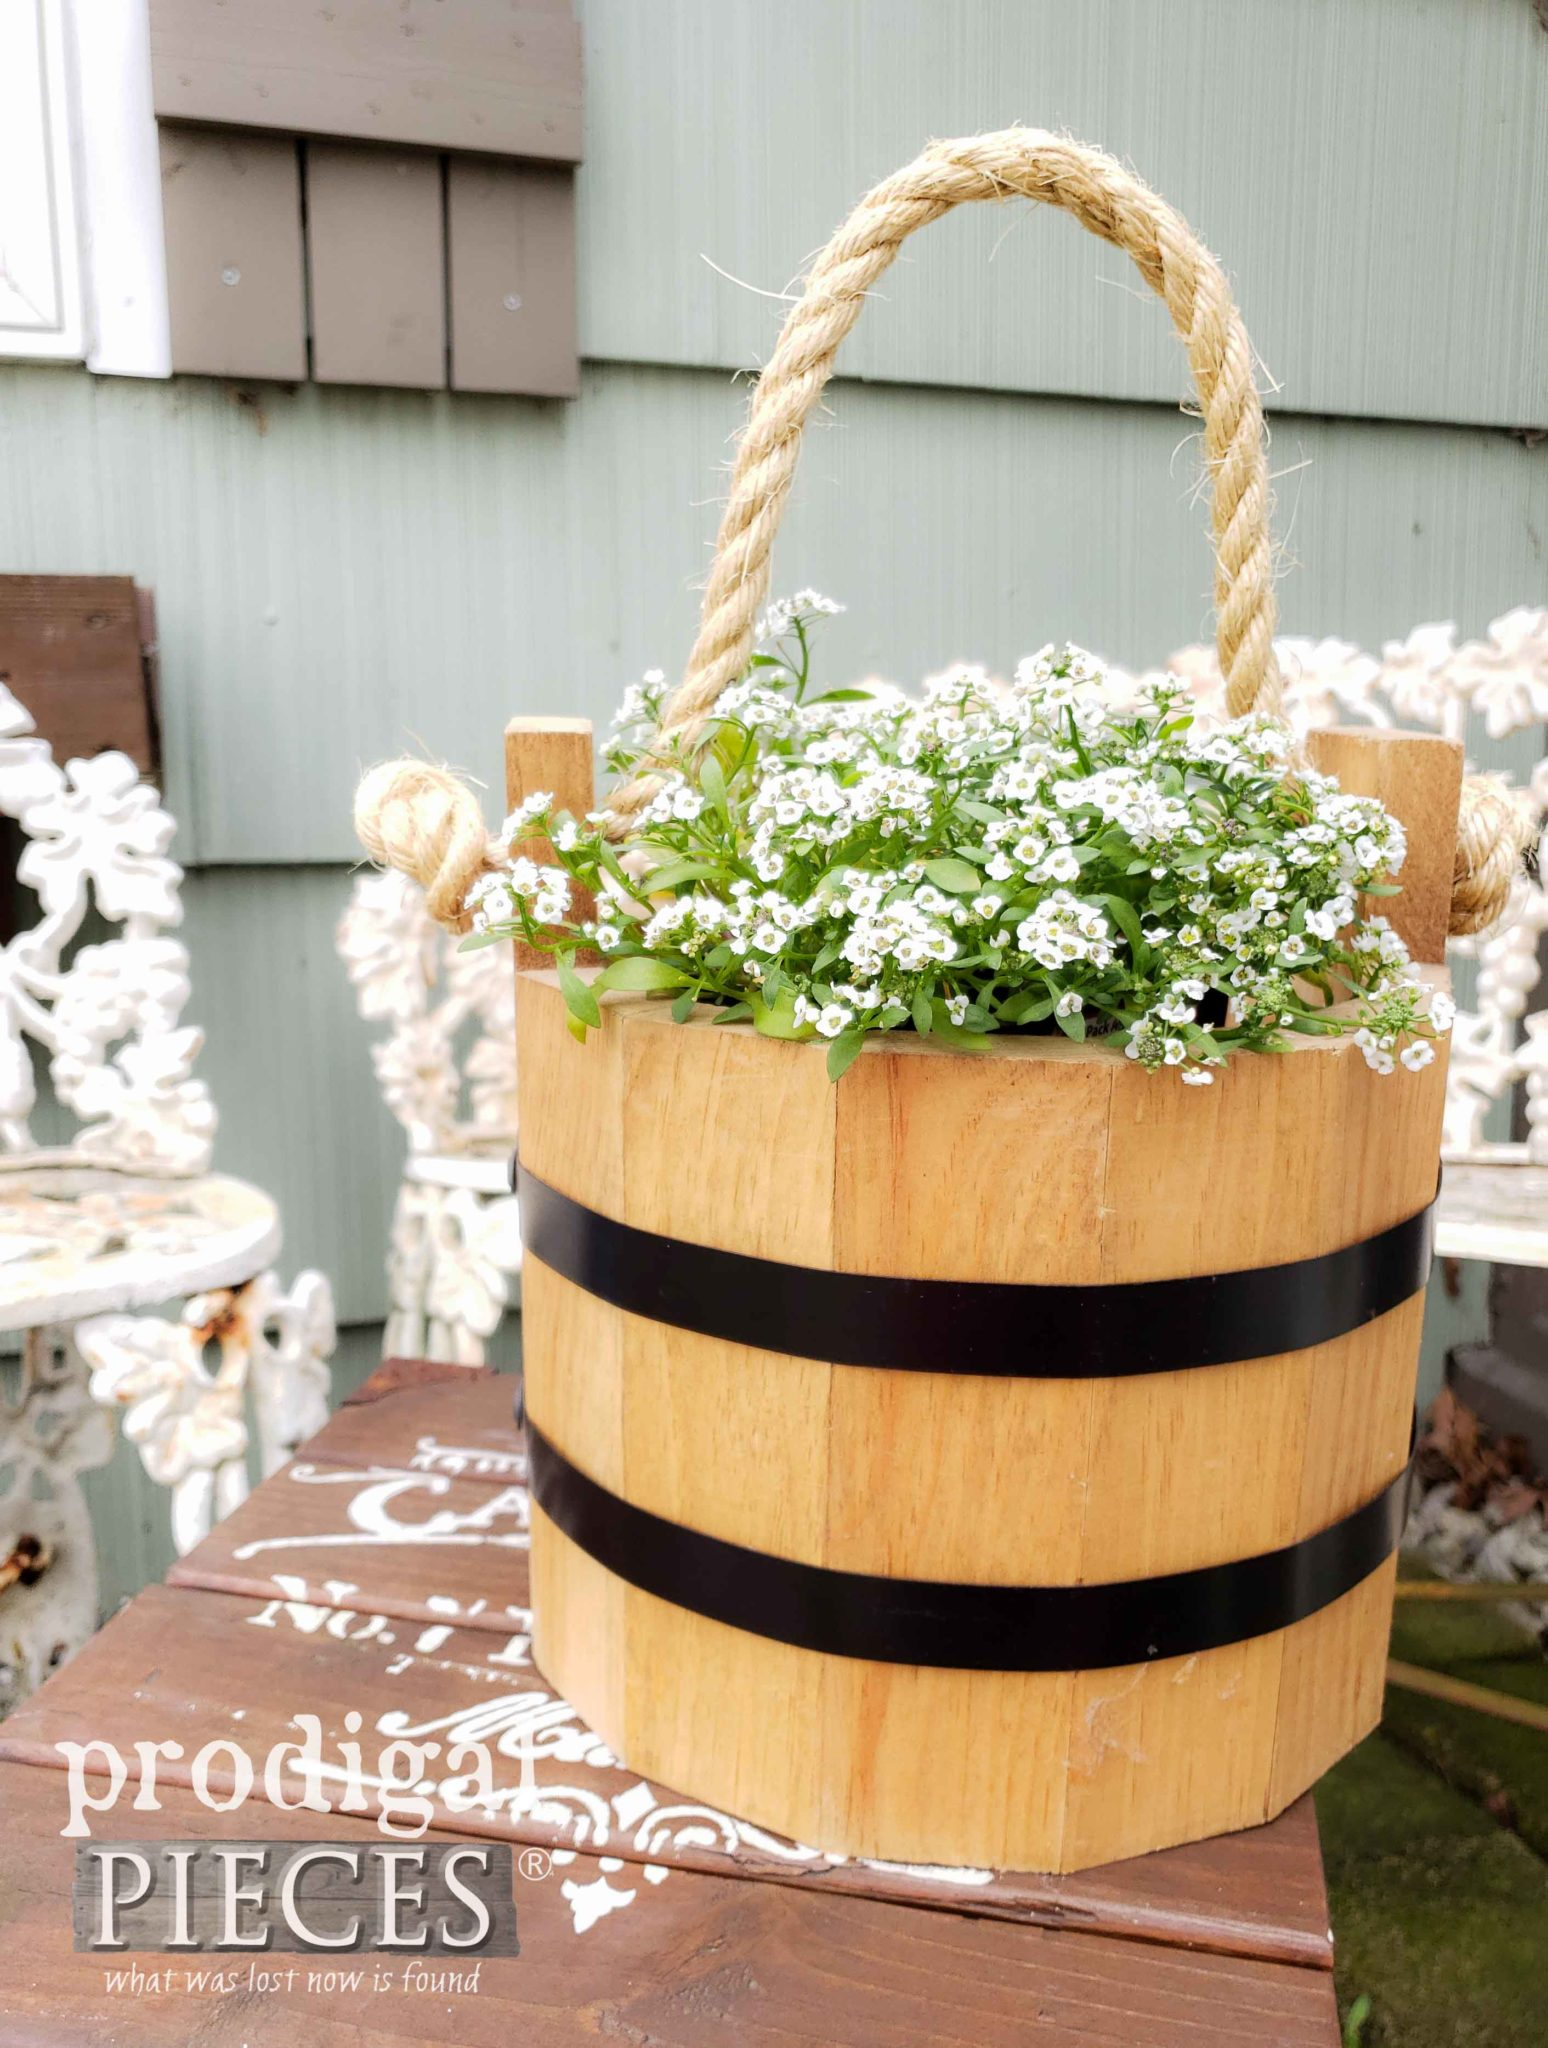 Handmade Wooden Buckets by Amish in the Heart of Ohio | Farmhouse Decor at Prodigal Pieces | shop.prodigalpieces.com #prodigalpieces #shopping #farmhouse #home #homedecor